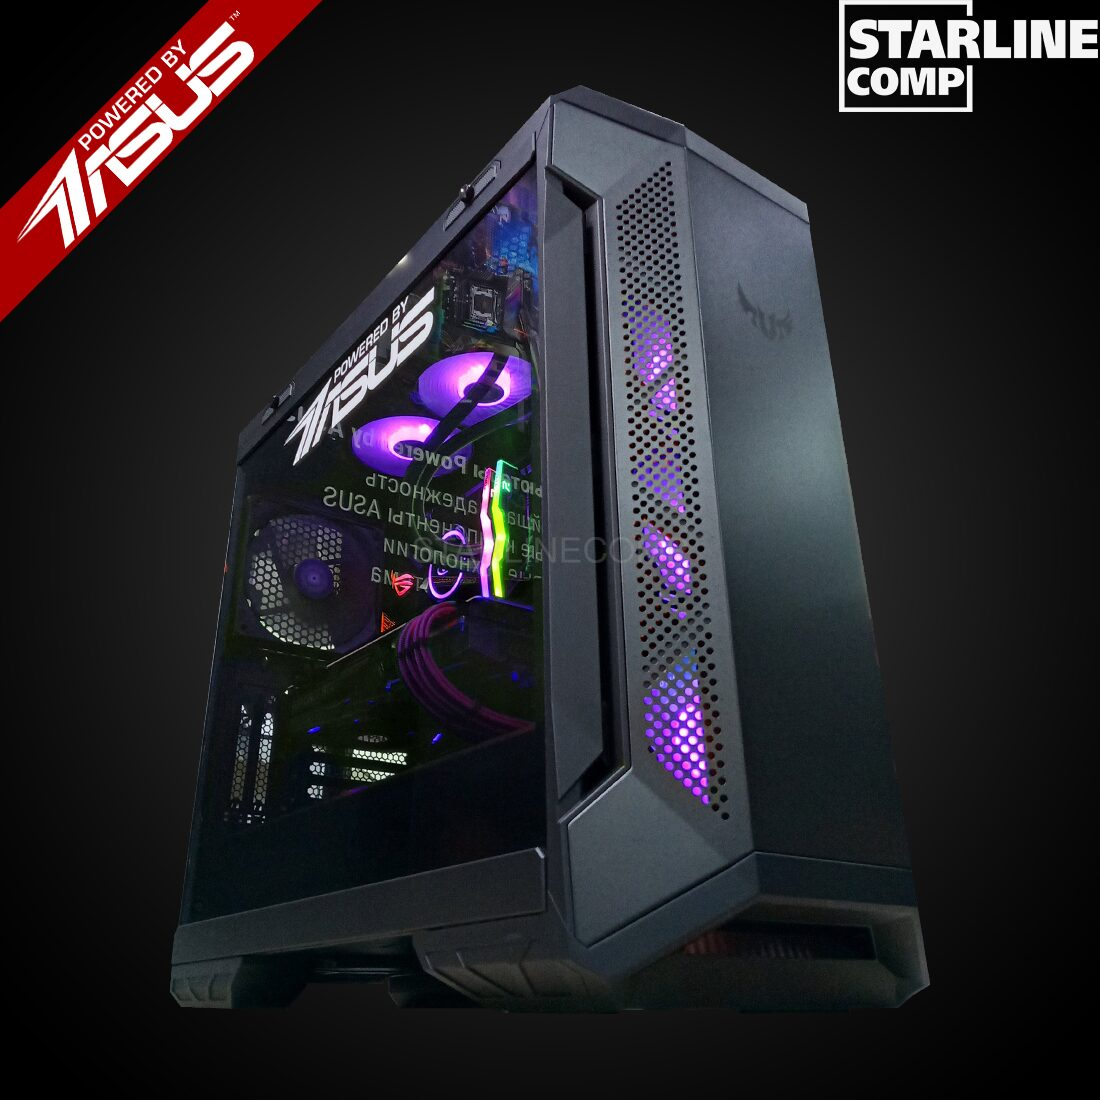 POWERED BY ASUS Intel Core i7-9700KF, RTX2080 Super 8Gb, SSD 500Gb,RAM 32 gb HDD 2000Gb